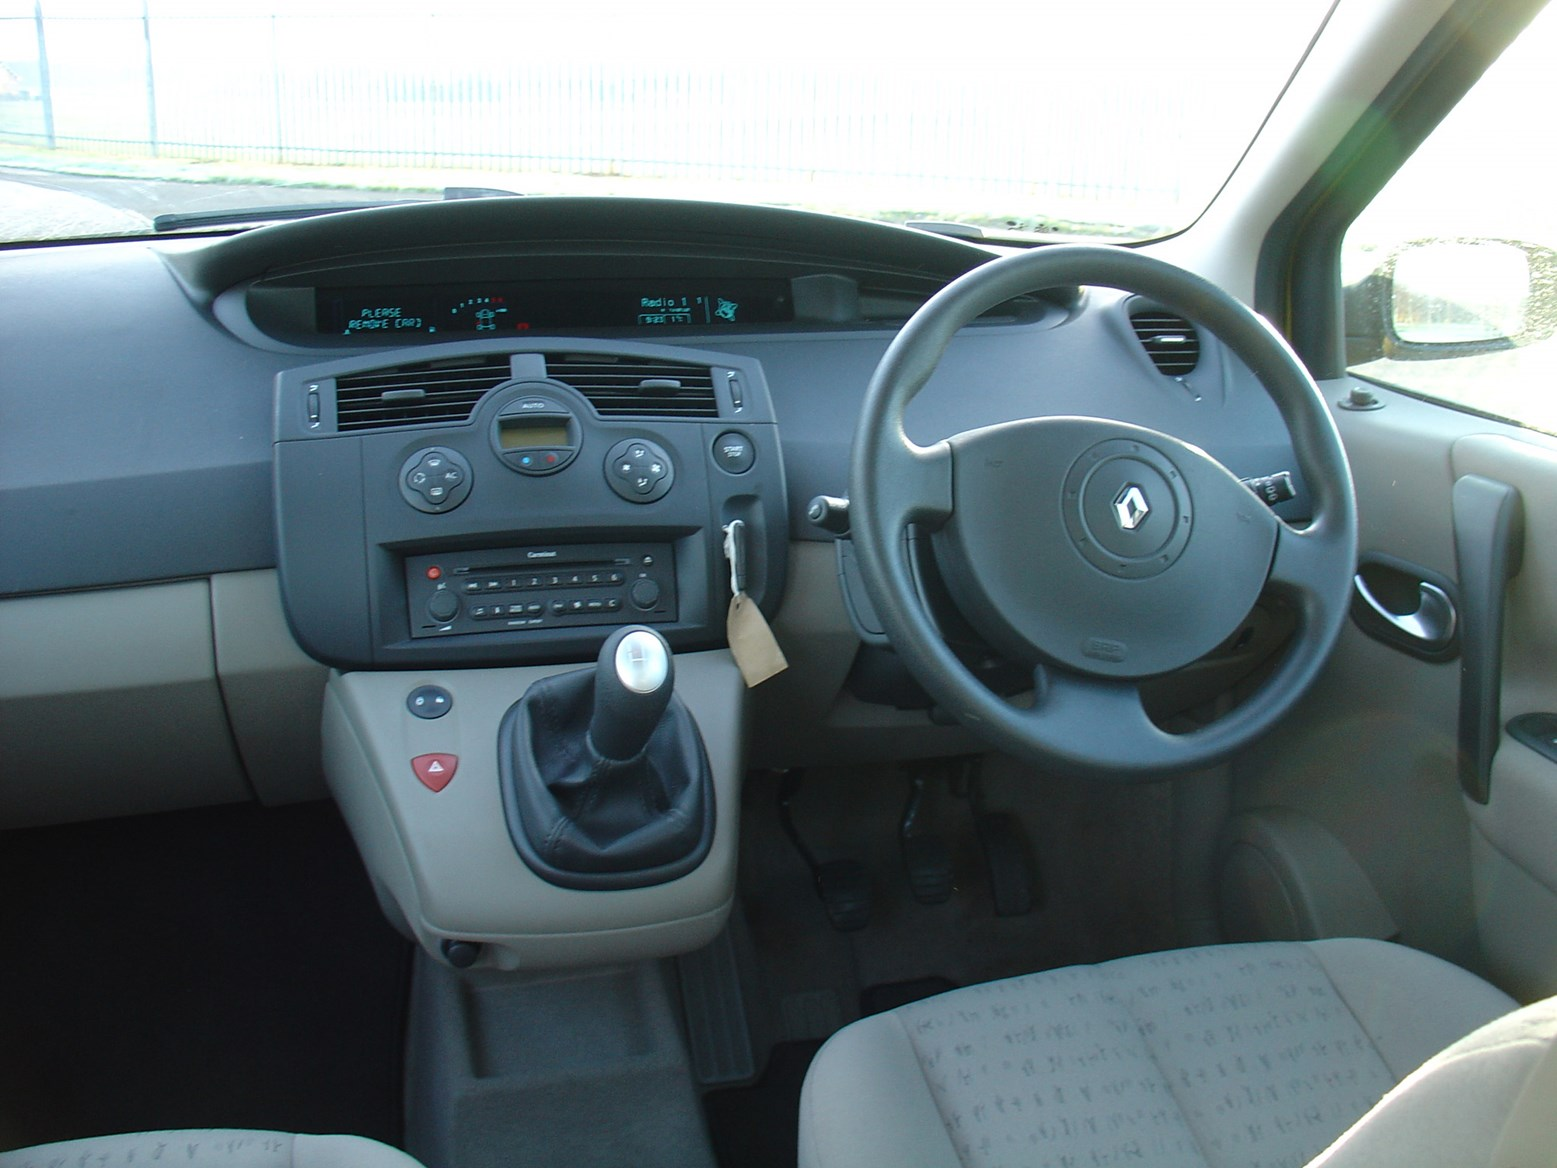 Exceptionnel Renault Grand Scenic Estate Review (2004 - 2009) | Parkers JA66